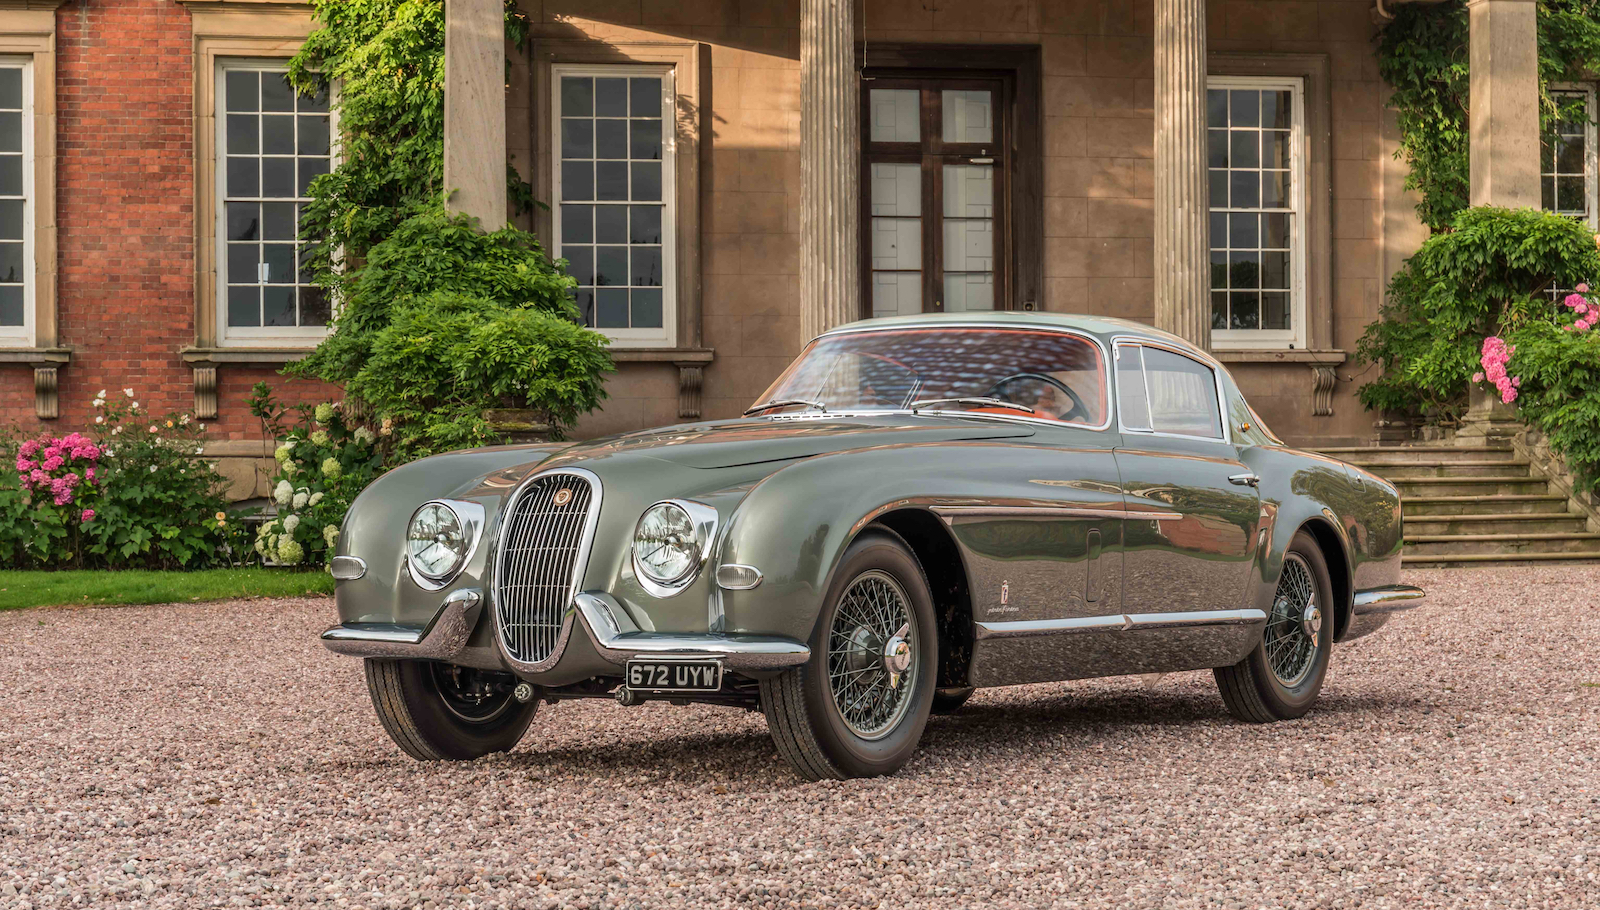 Restored 1954 Jaguar XK120 SE Debuts at 2017 Pebble Beach Concours